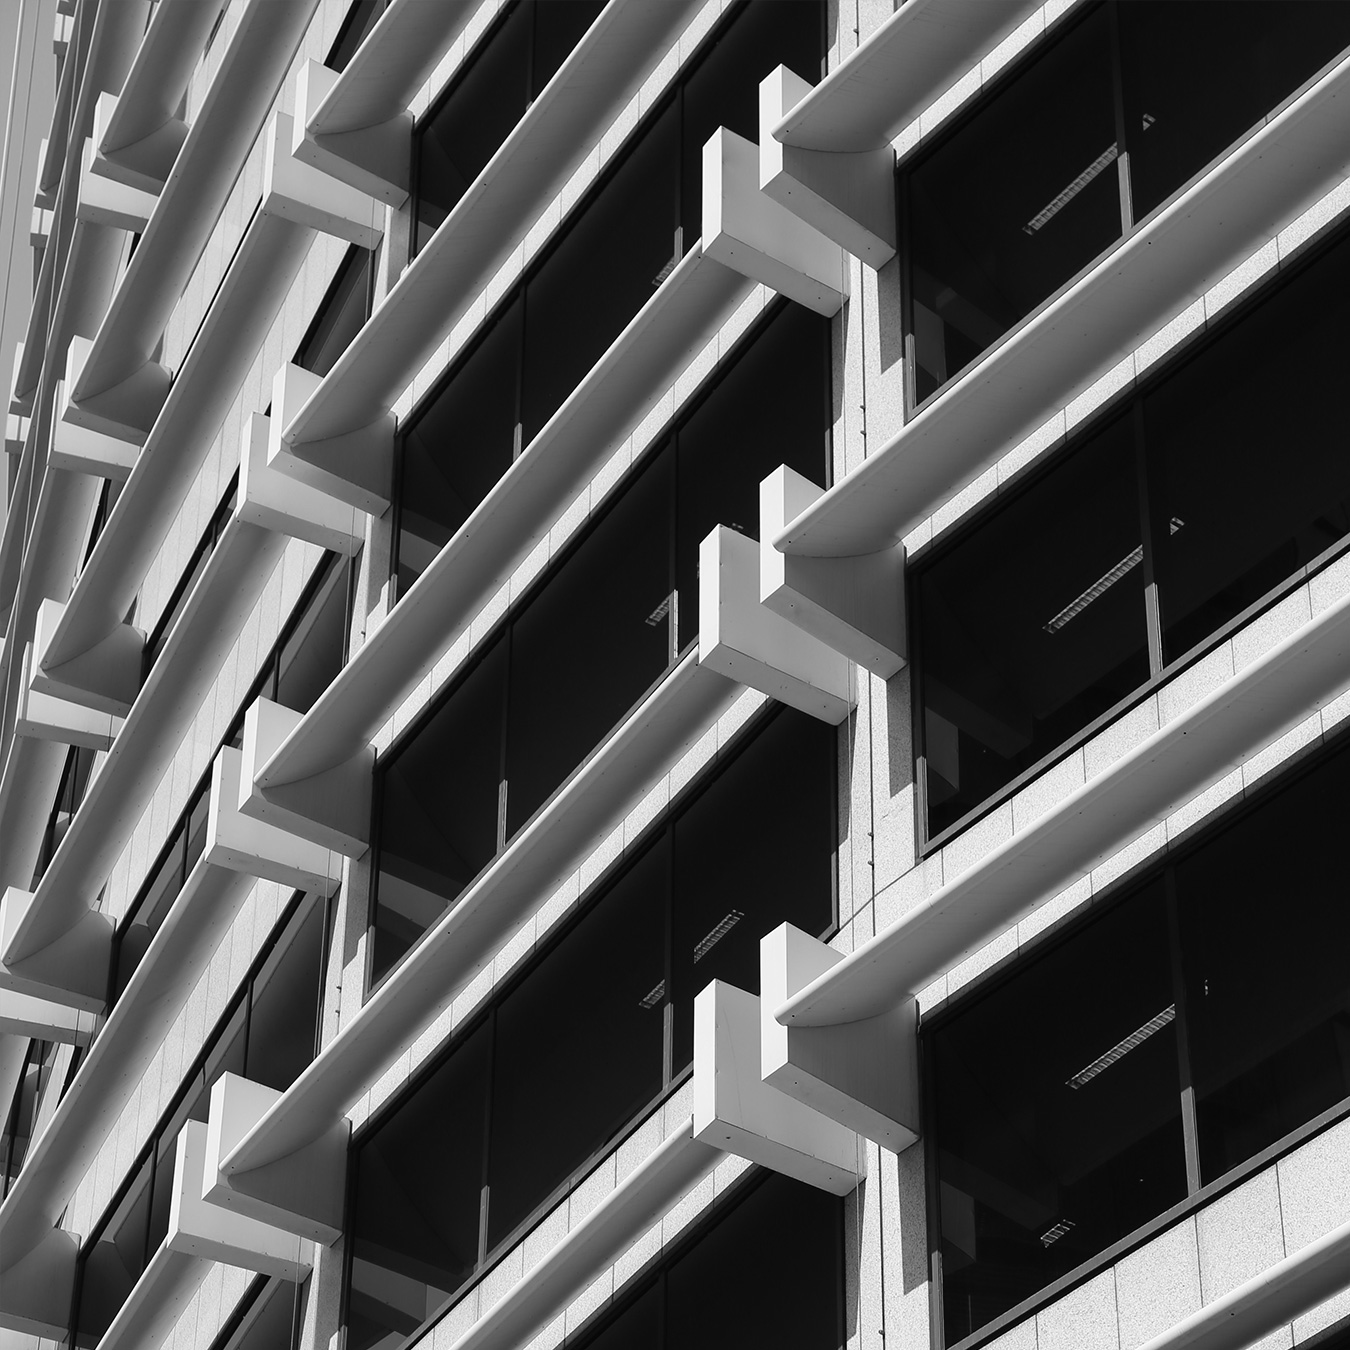 Tall Building Exterior in Black and White